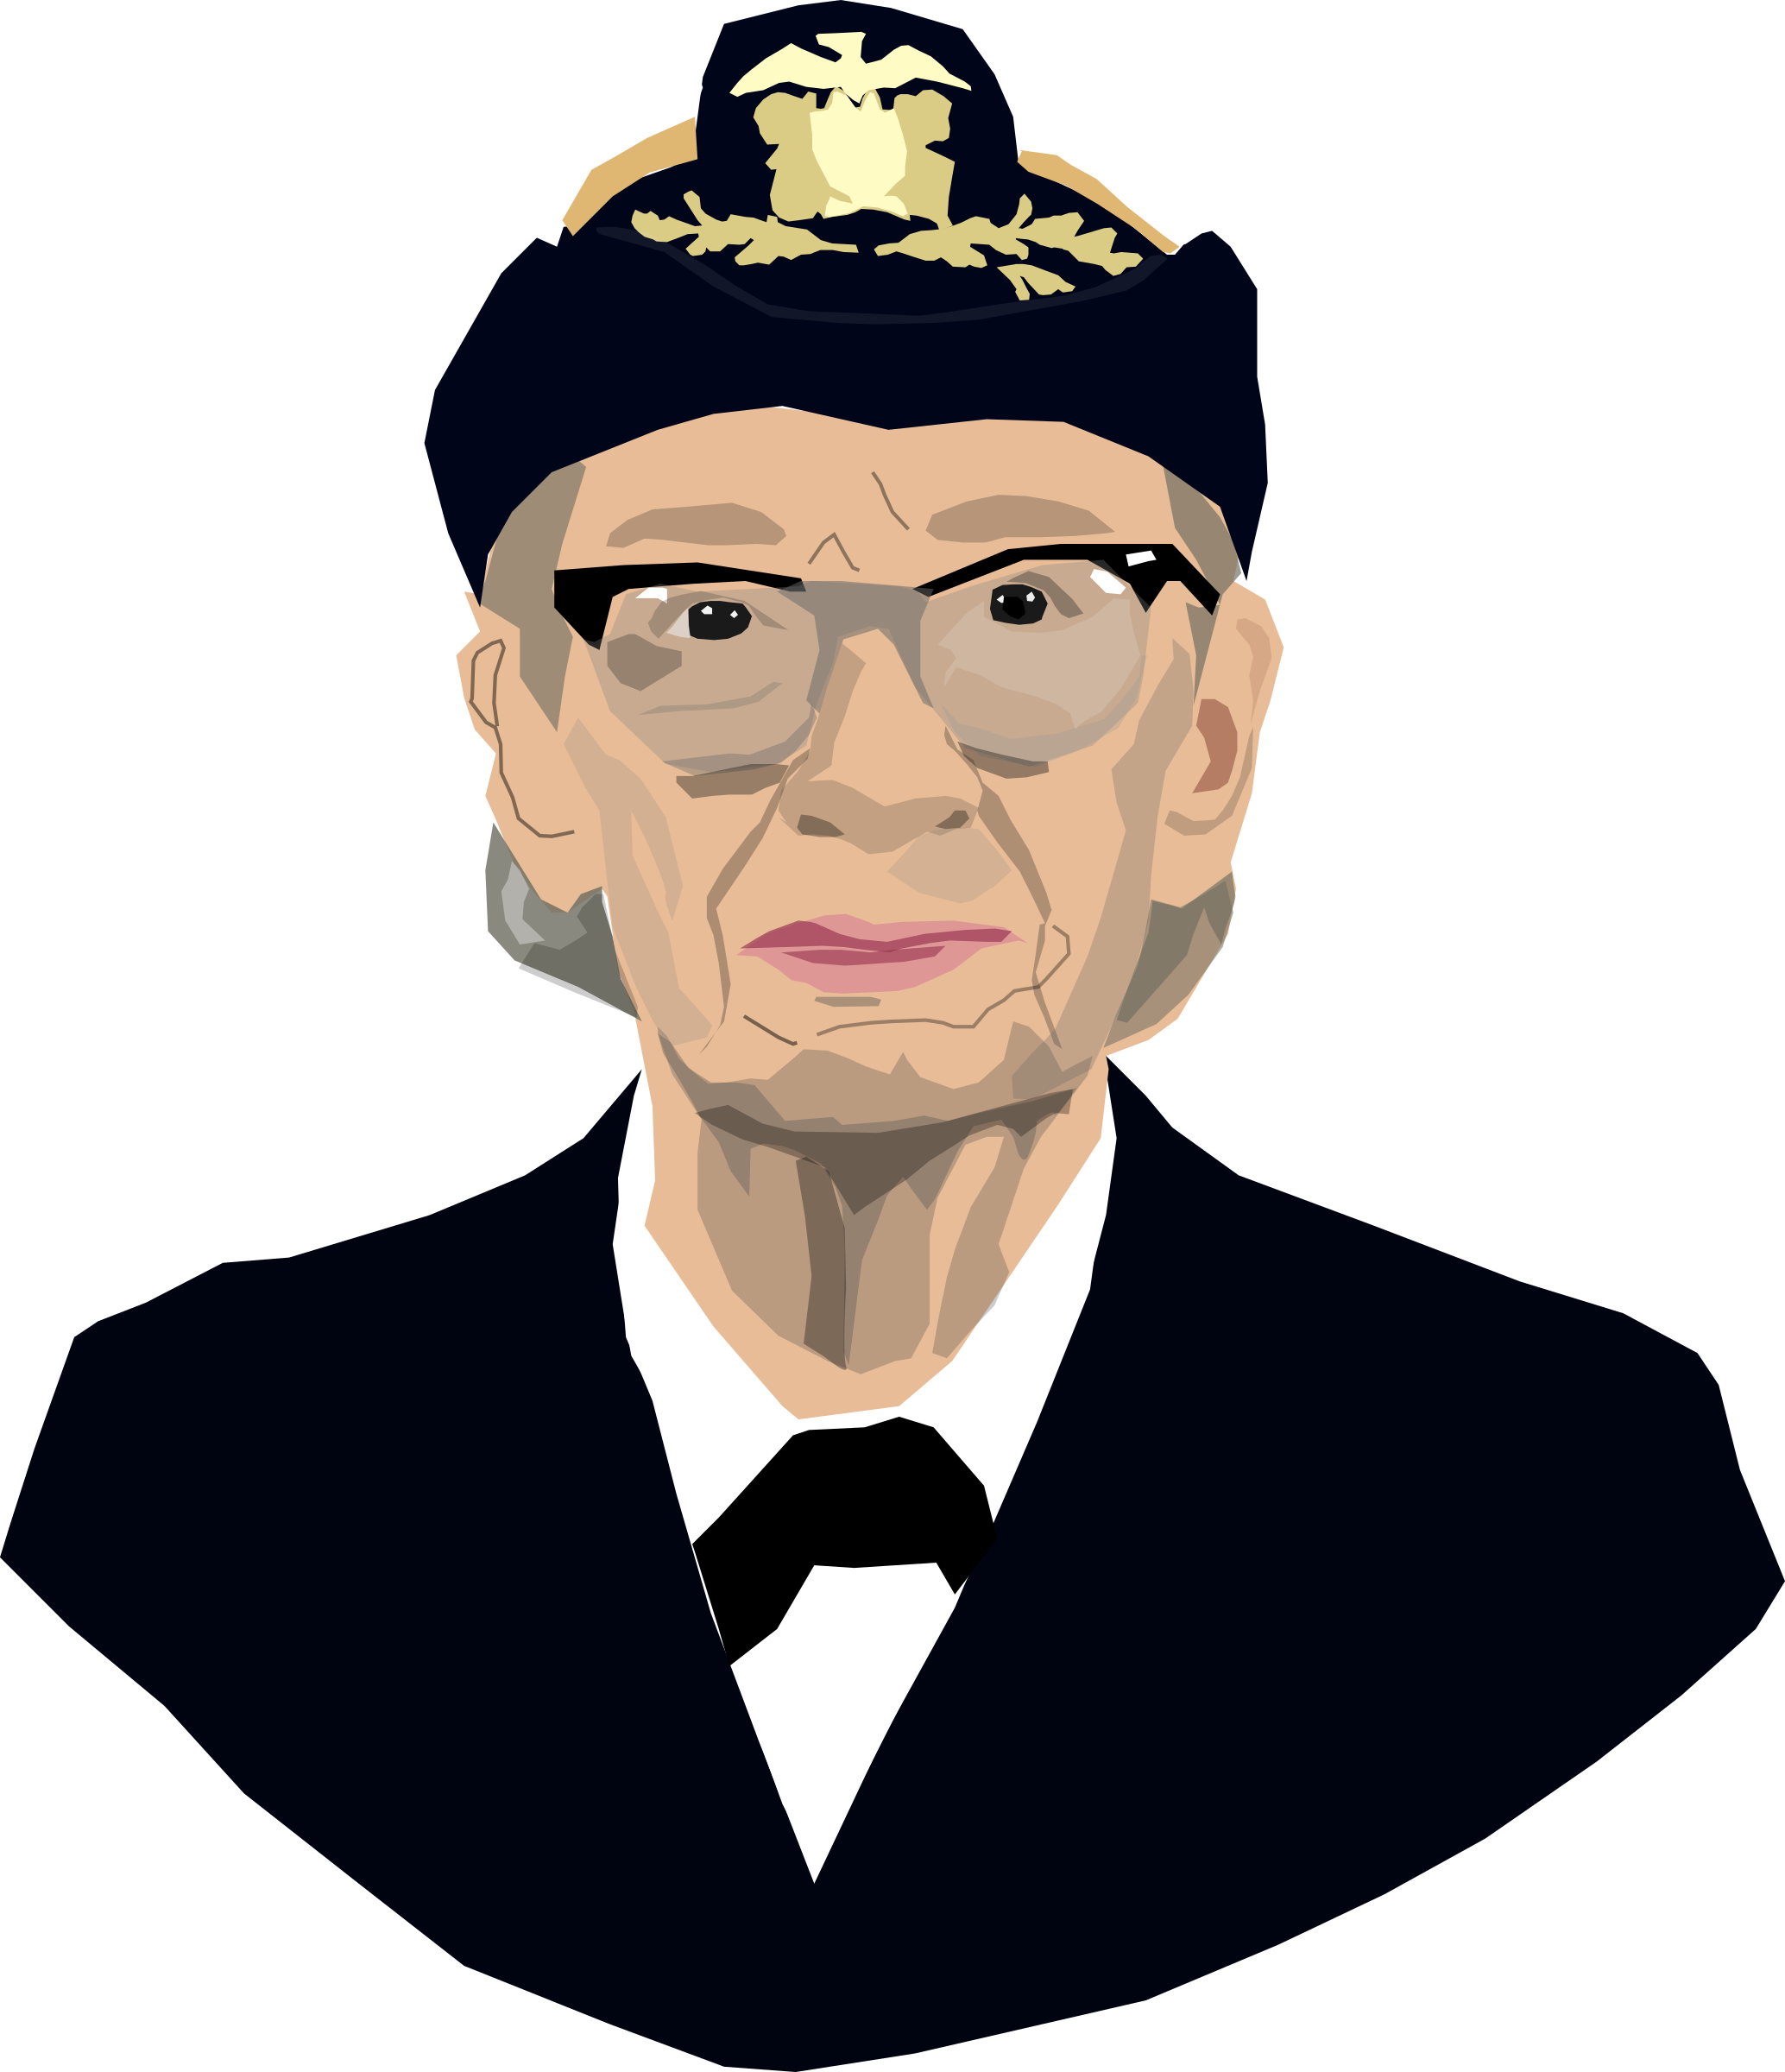 Grace Hopper by gingercoons